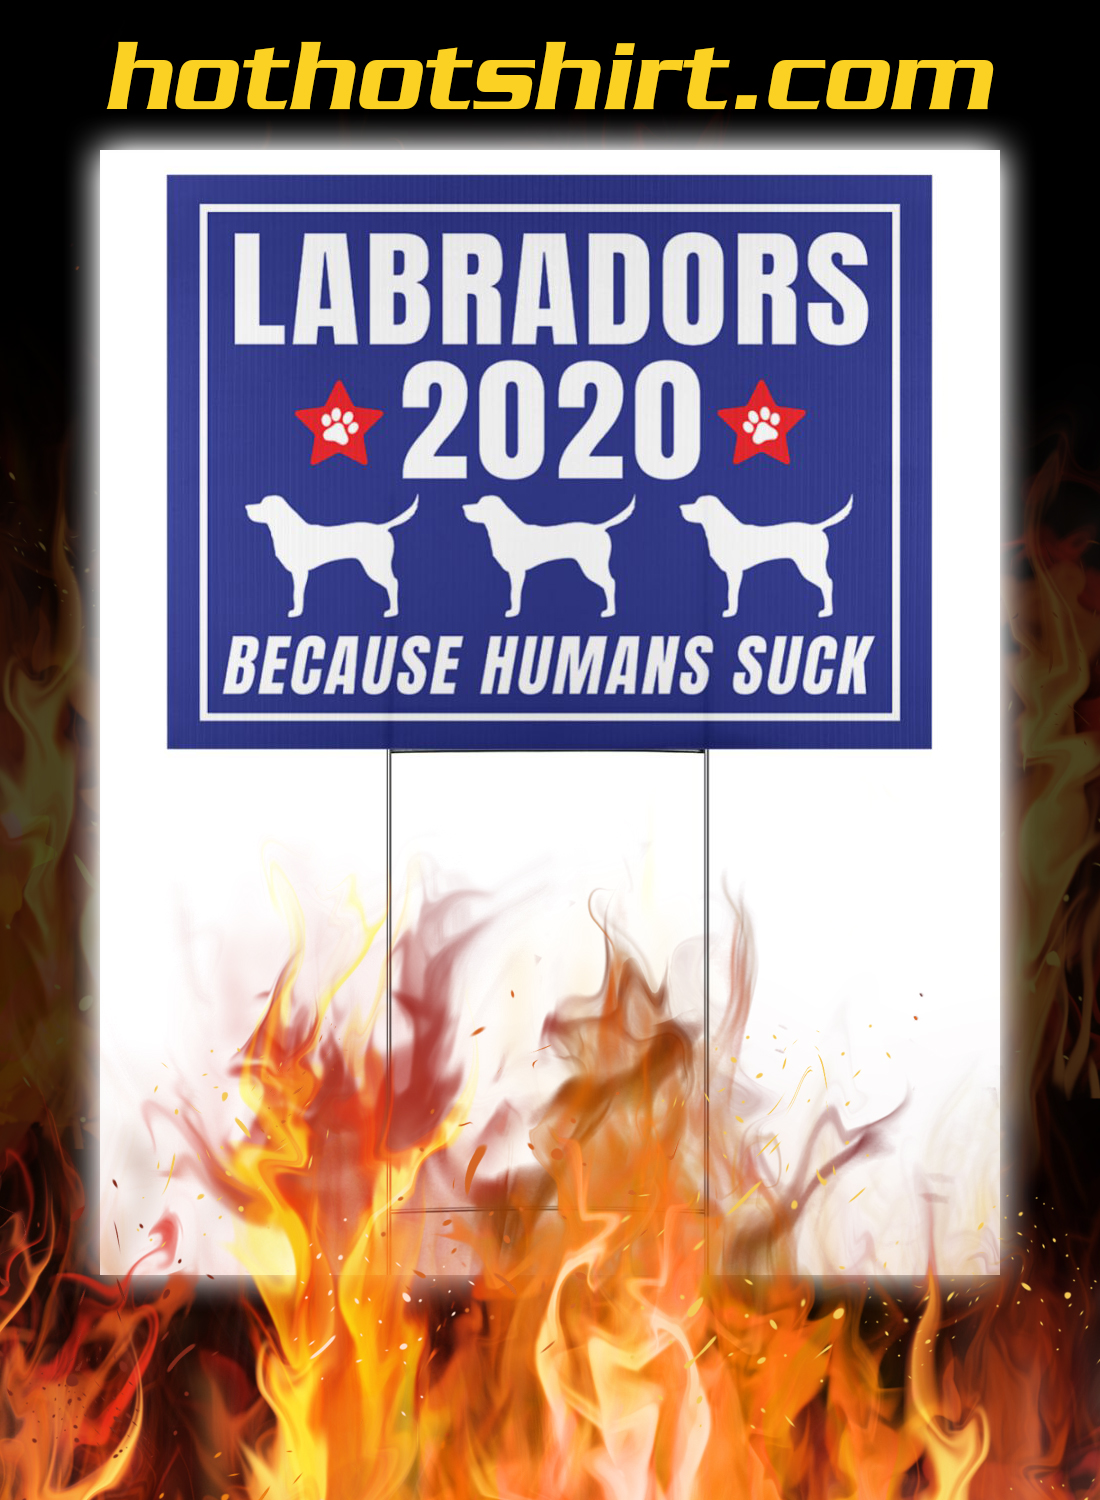 Labradors 2020 because humans suck yard signs 2